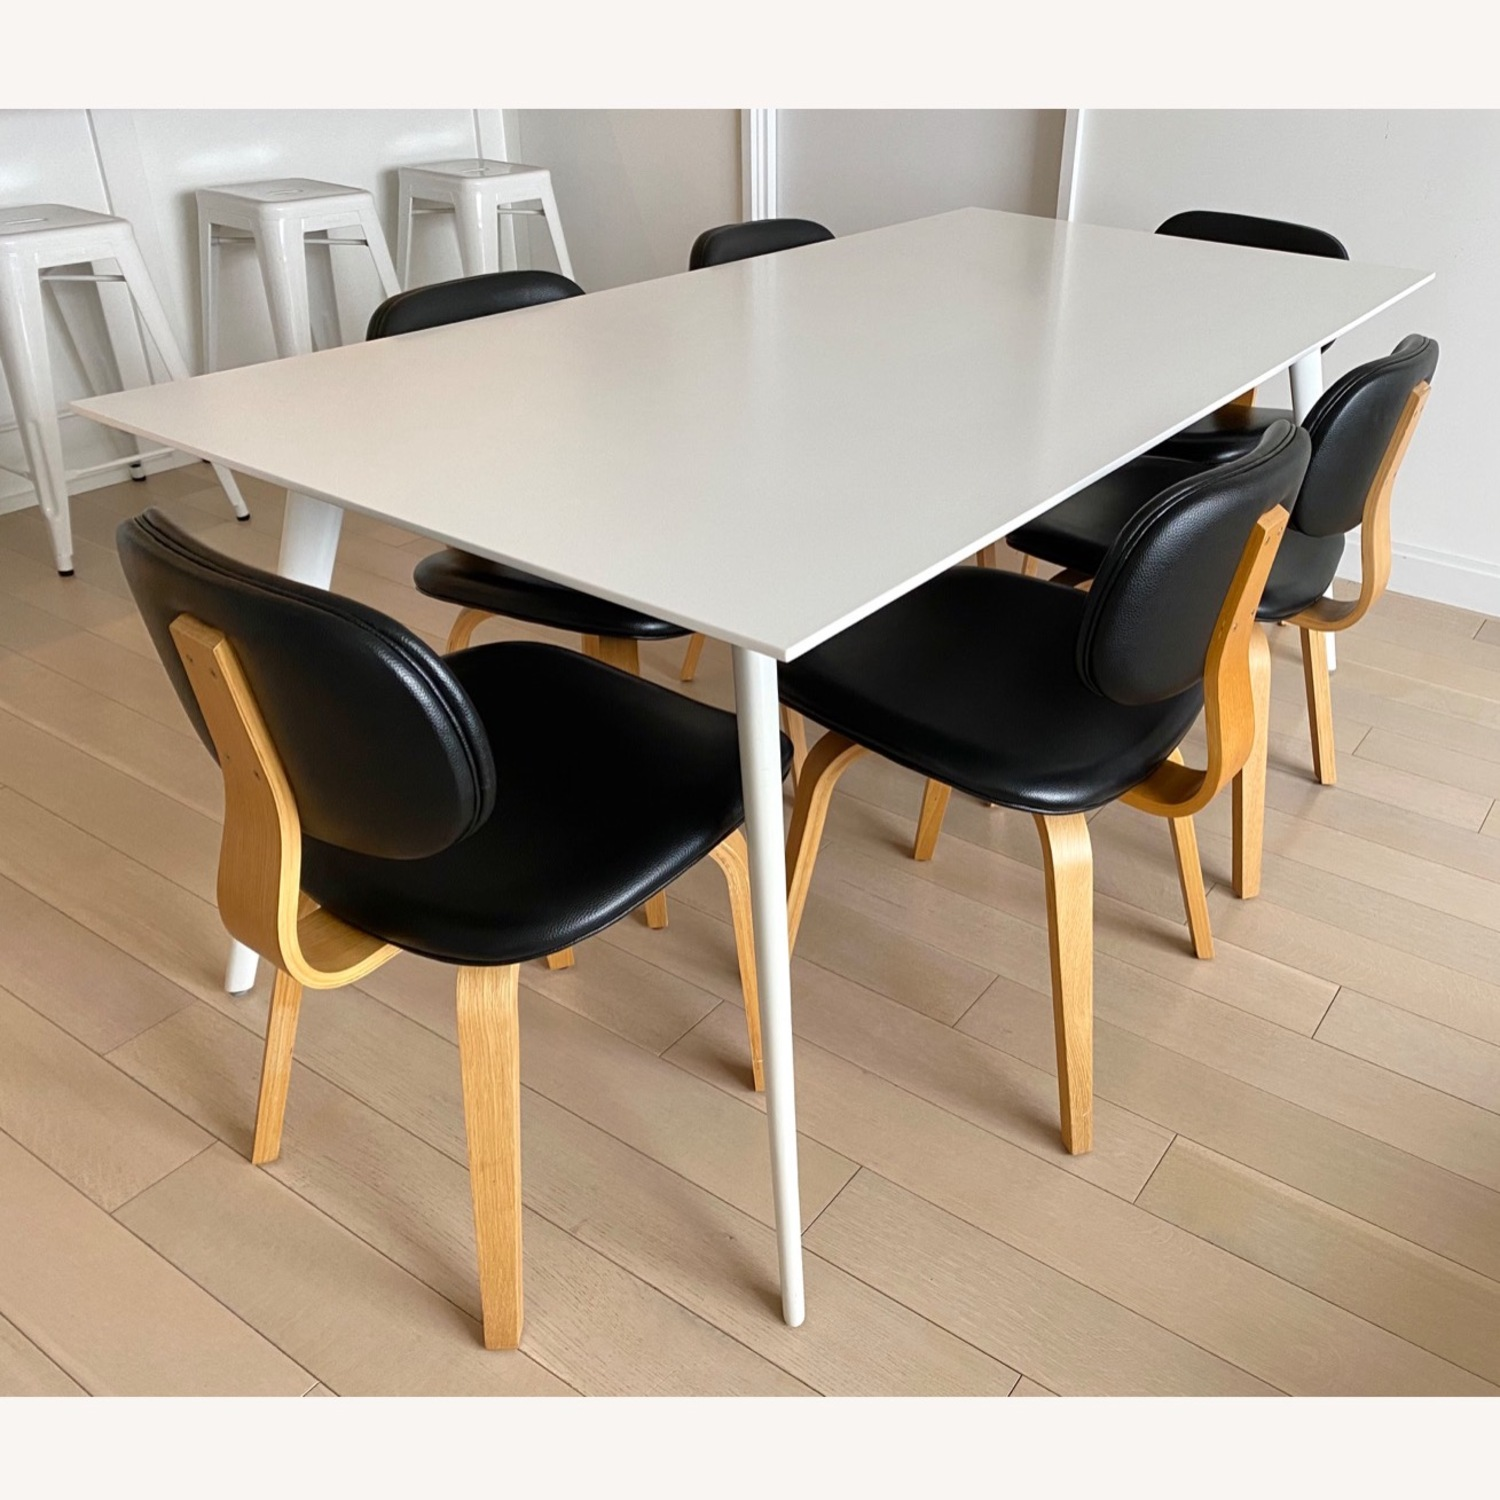 ABC Home White Modern Dining Table - image-1